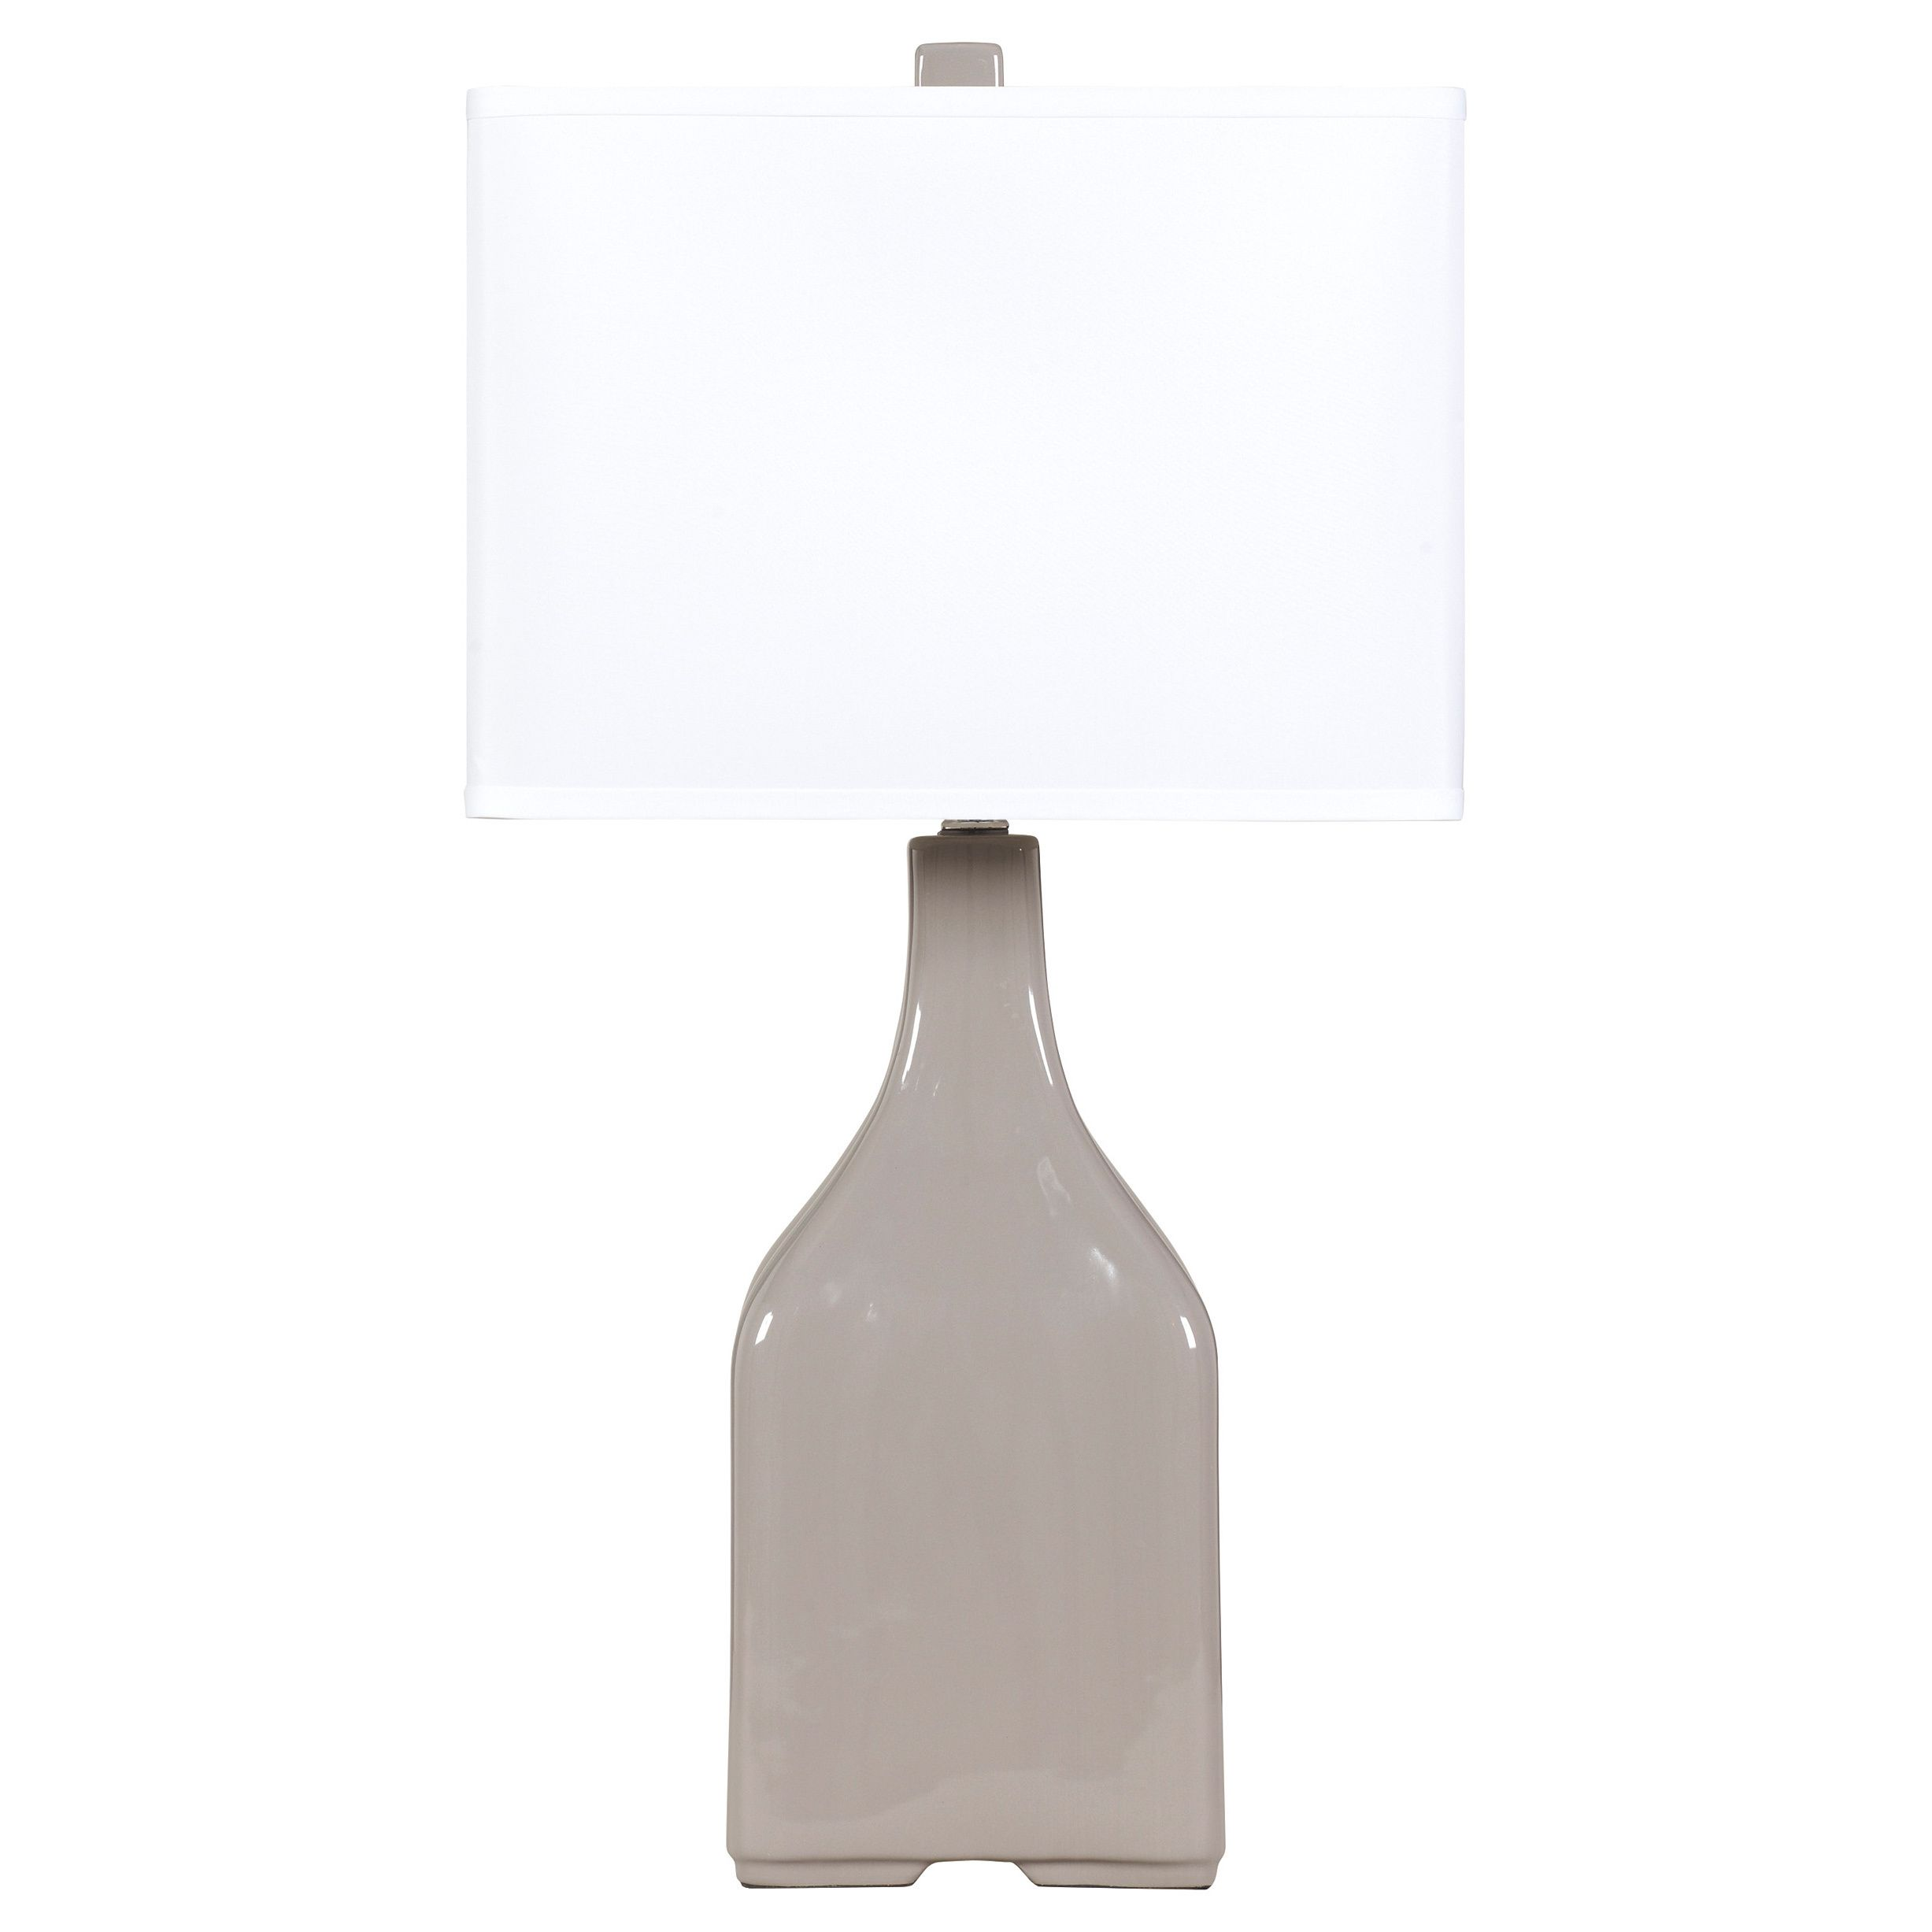 The Quilla Ceramic Table Lamp From Ashley Furniture Features A Light 3 Way Switch Options Top Is Finished With Crisp White Hardback Shade Housing For Versatile Lighting